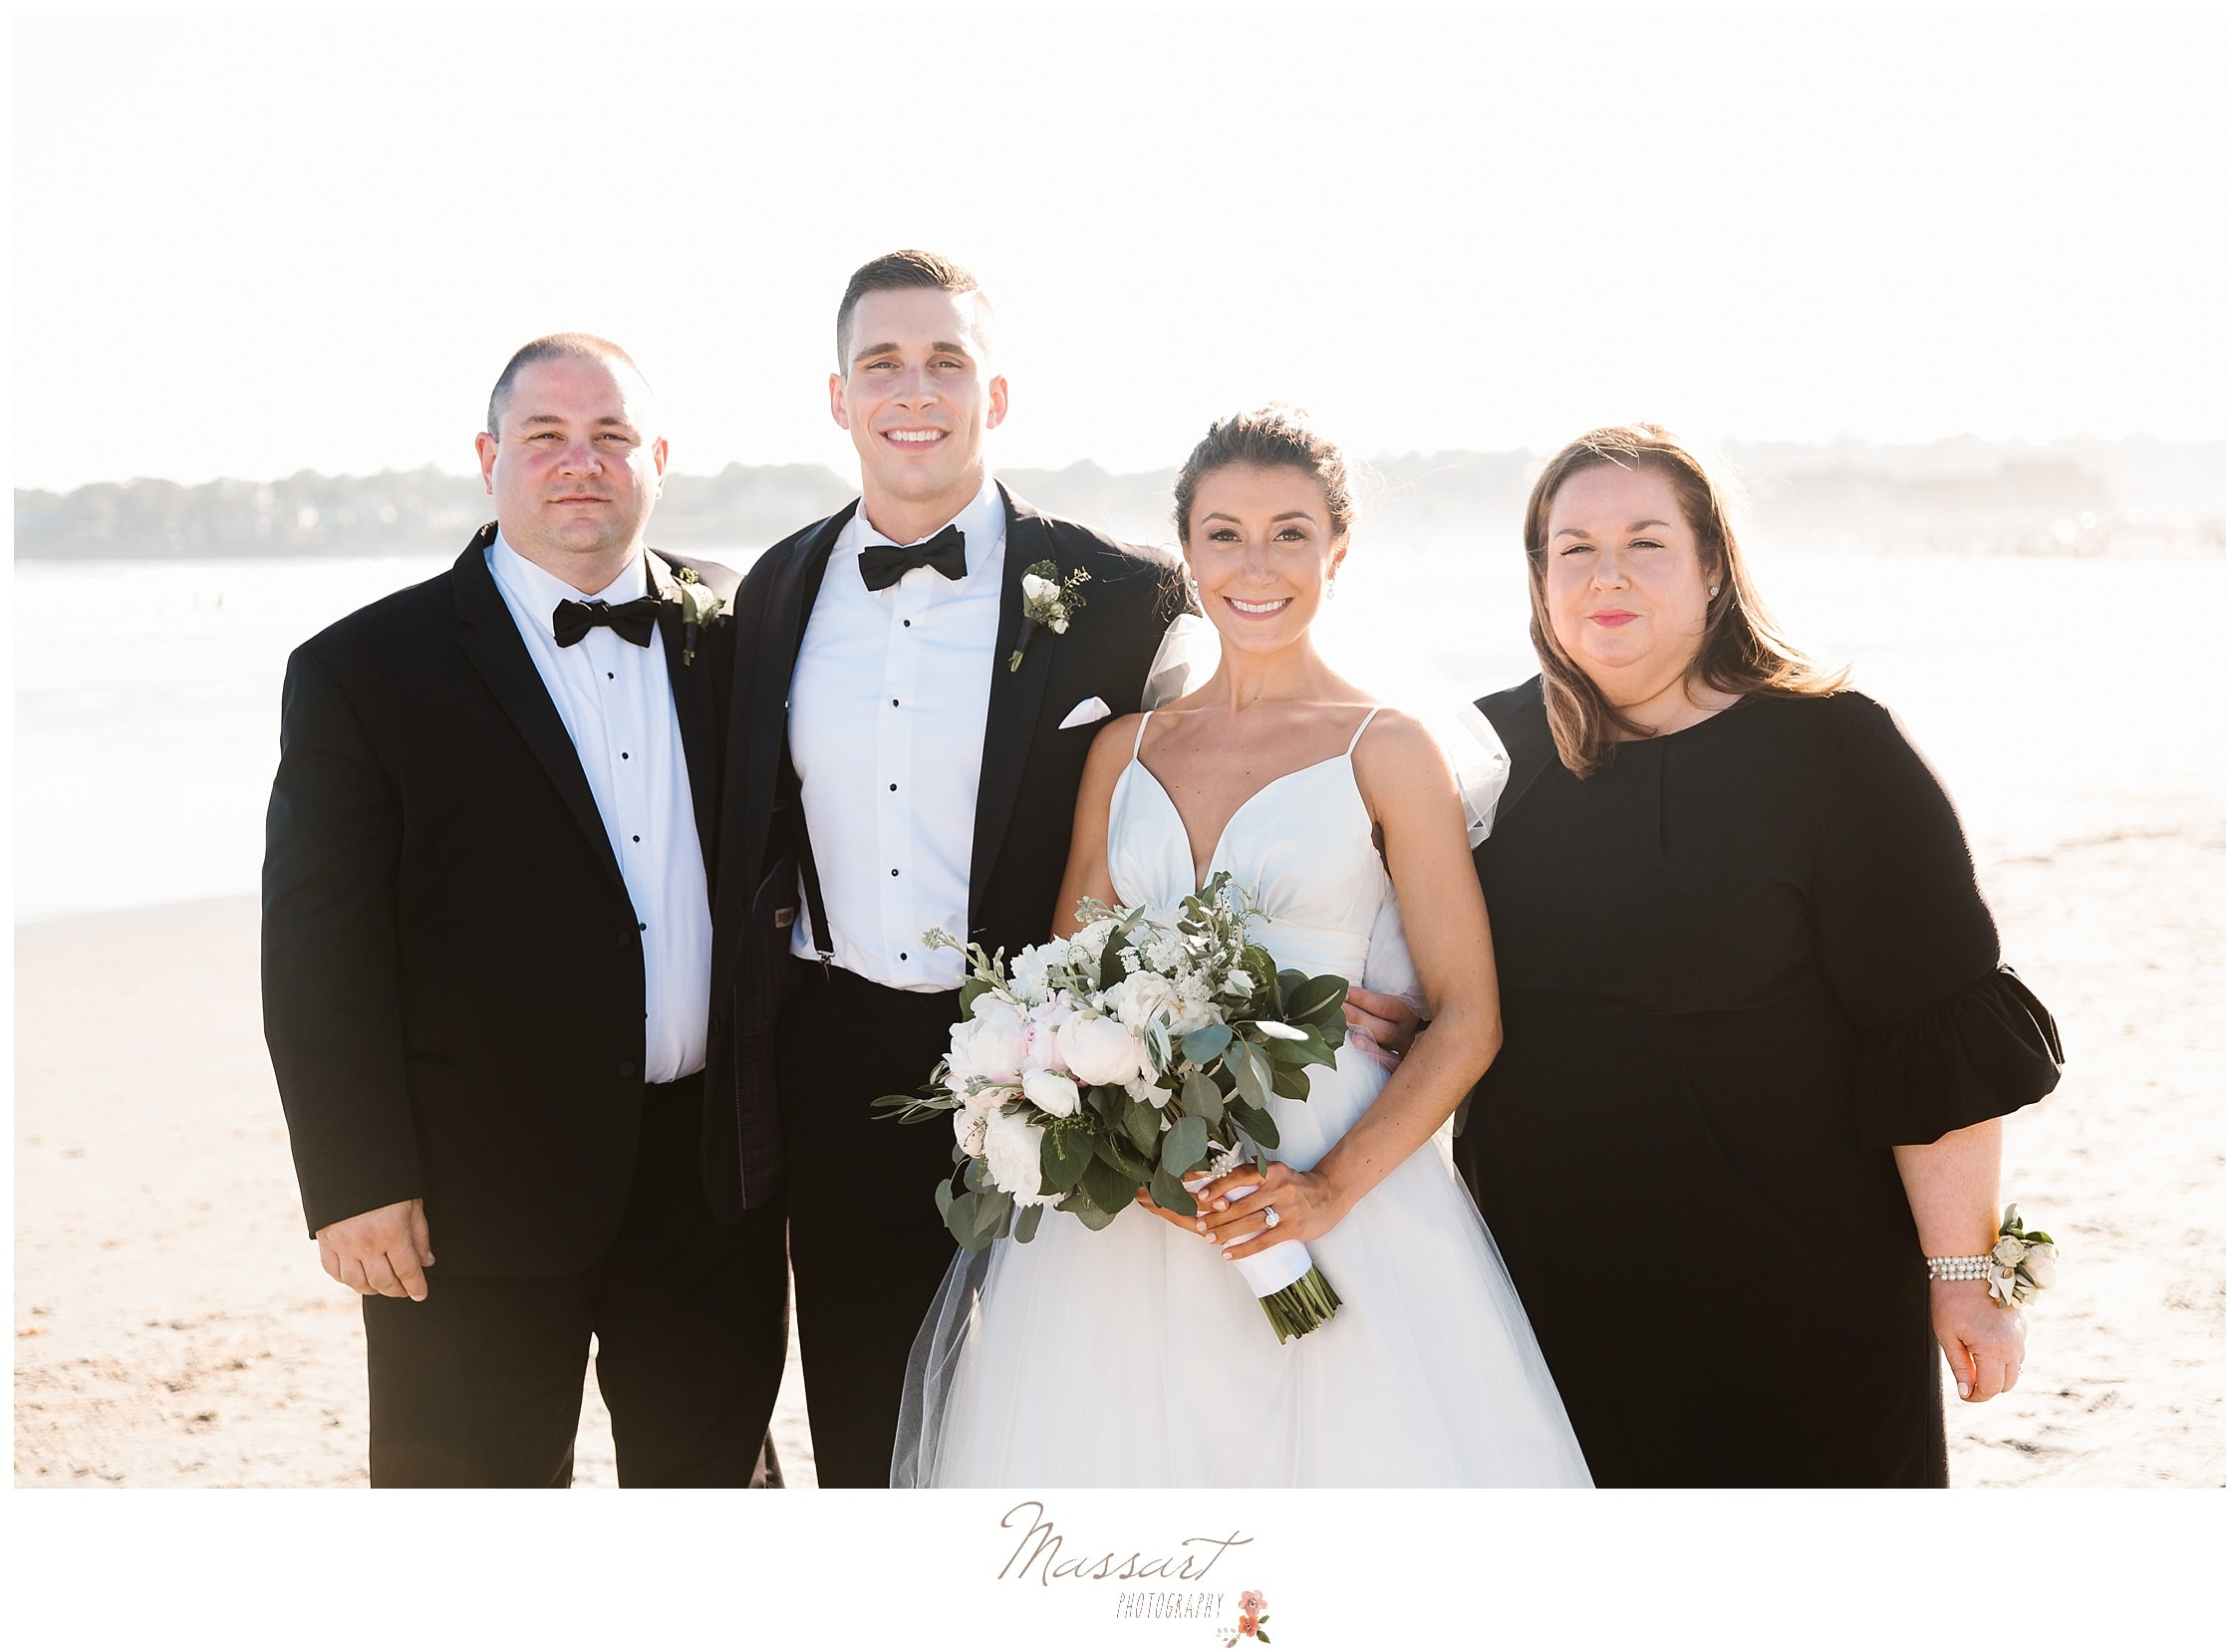 Bride and groom with parents at the Newport Beach House photographed by Massart Photography of Warwick RI